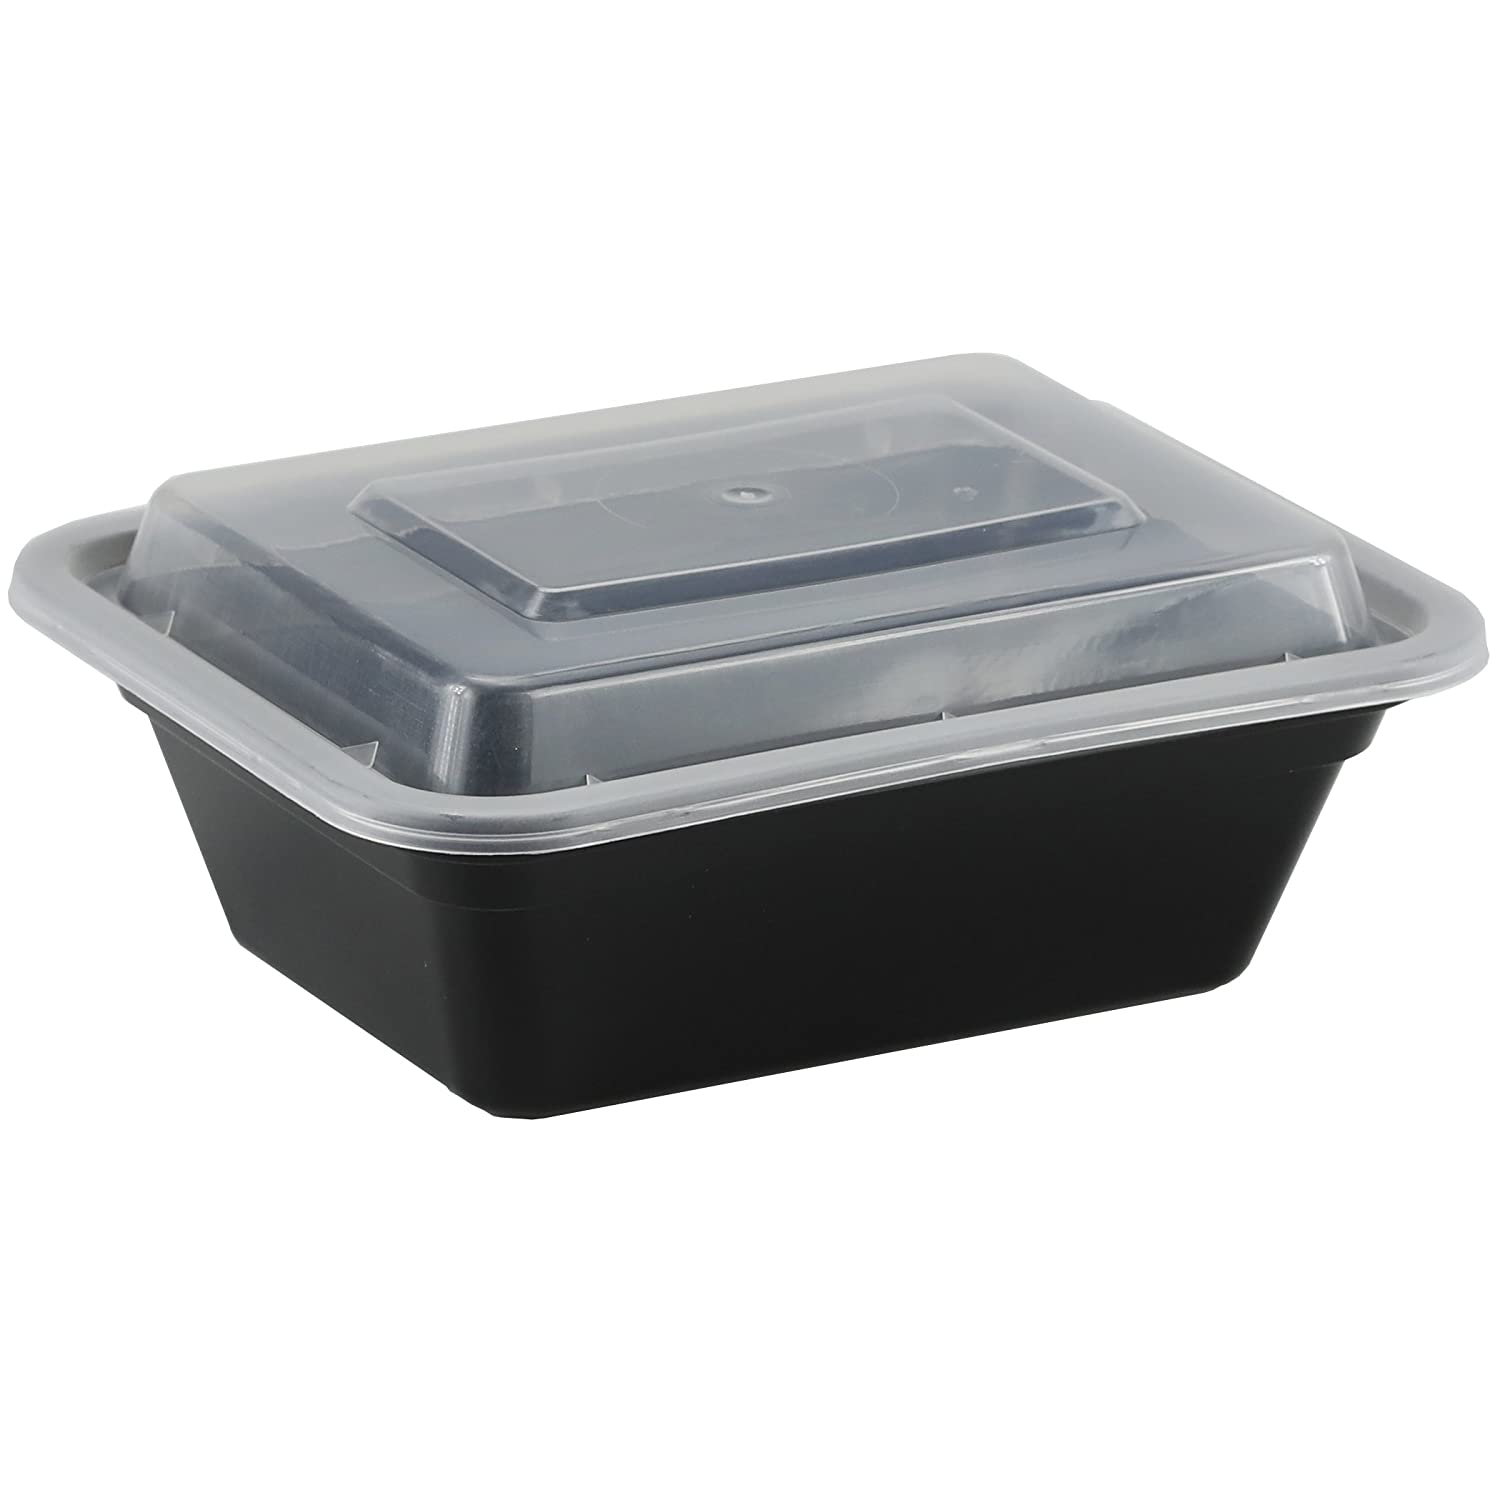 Food Containers Storage Pasta Boxes Plastic With Lid Microwave Freezer Stackable Carefully Selected Materials Kitchen Storage & Organization